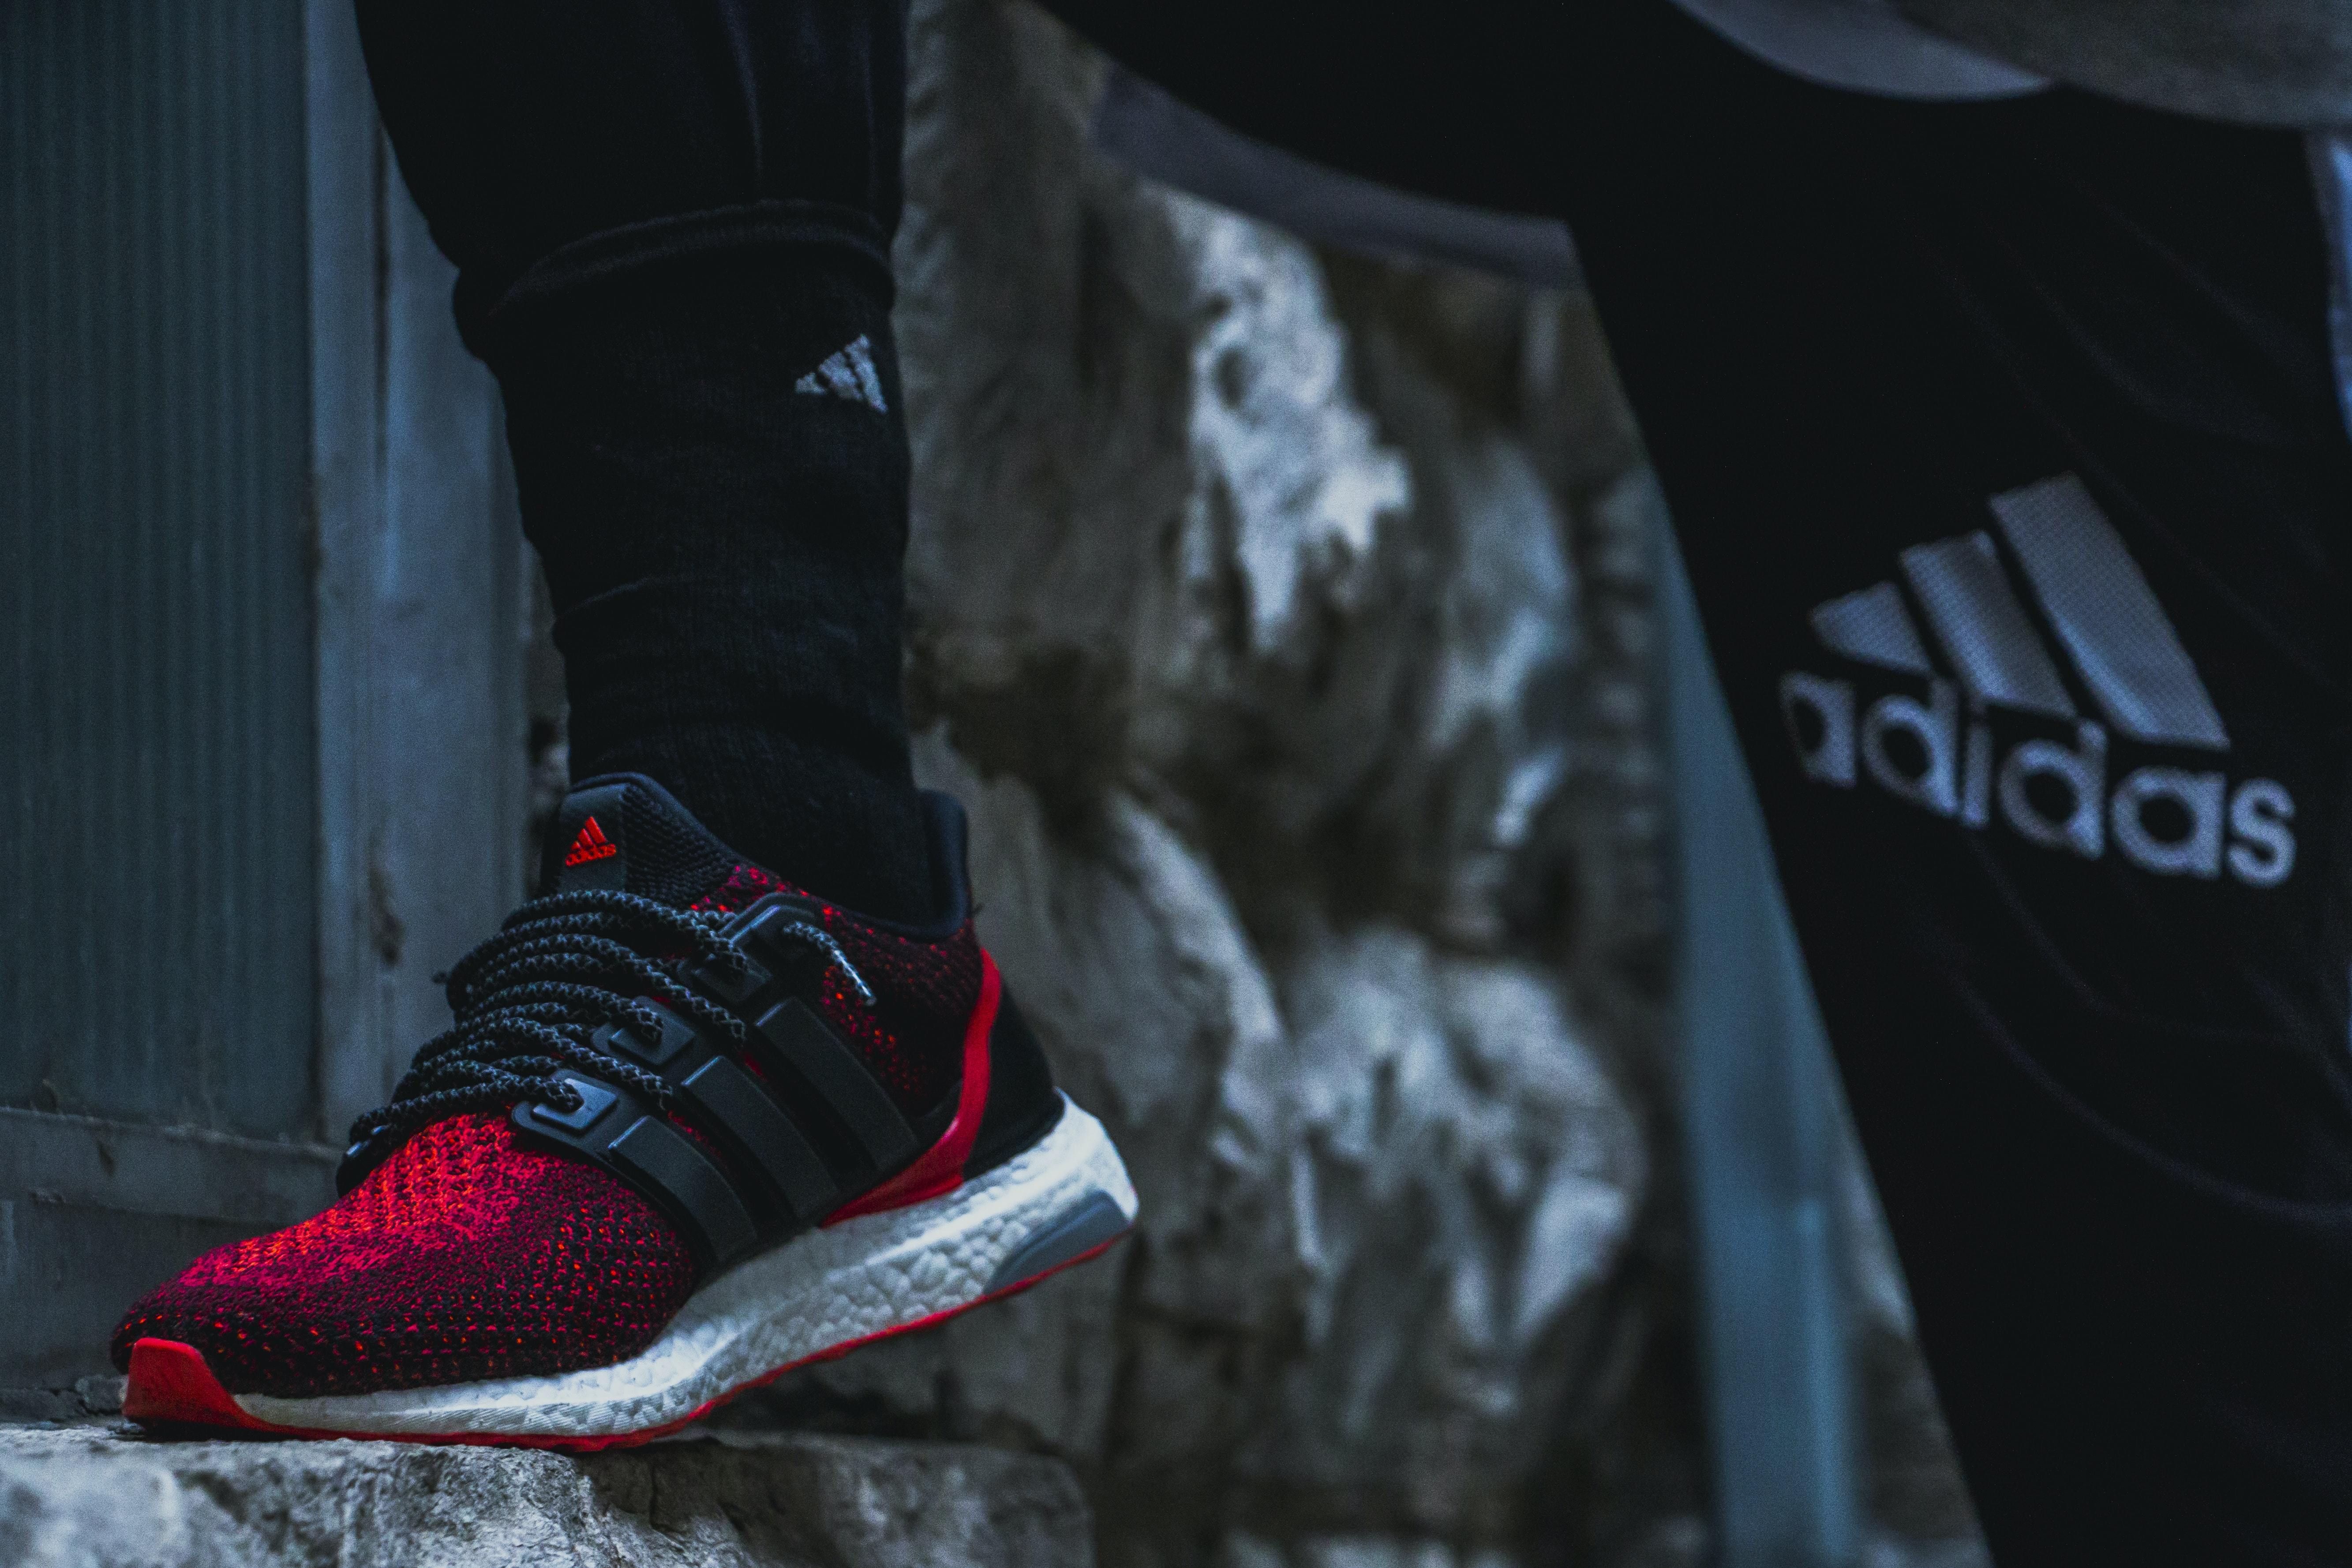 person wearing red and black adidas shoes